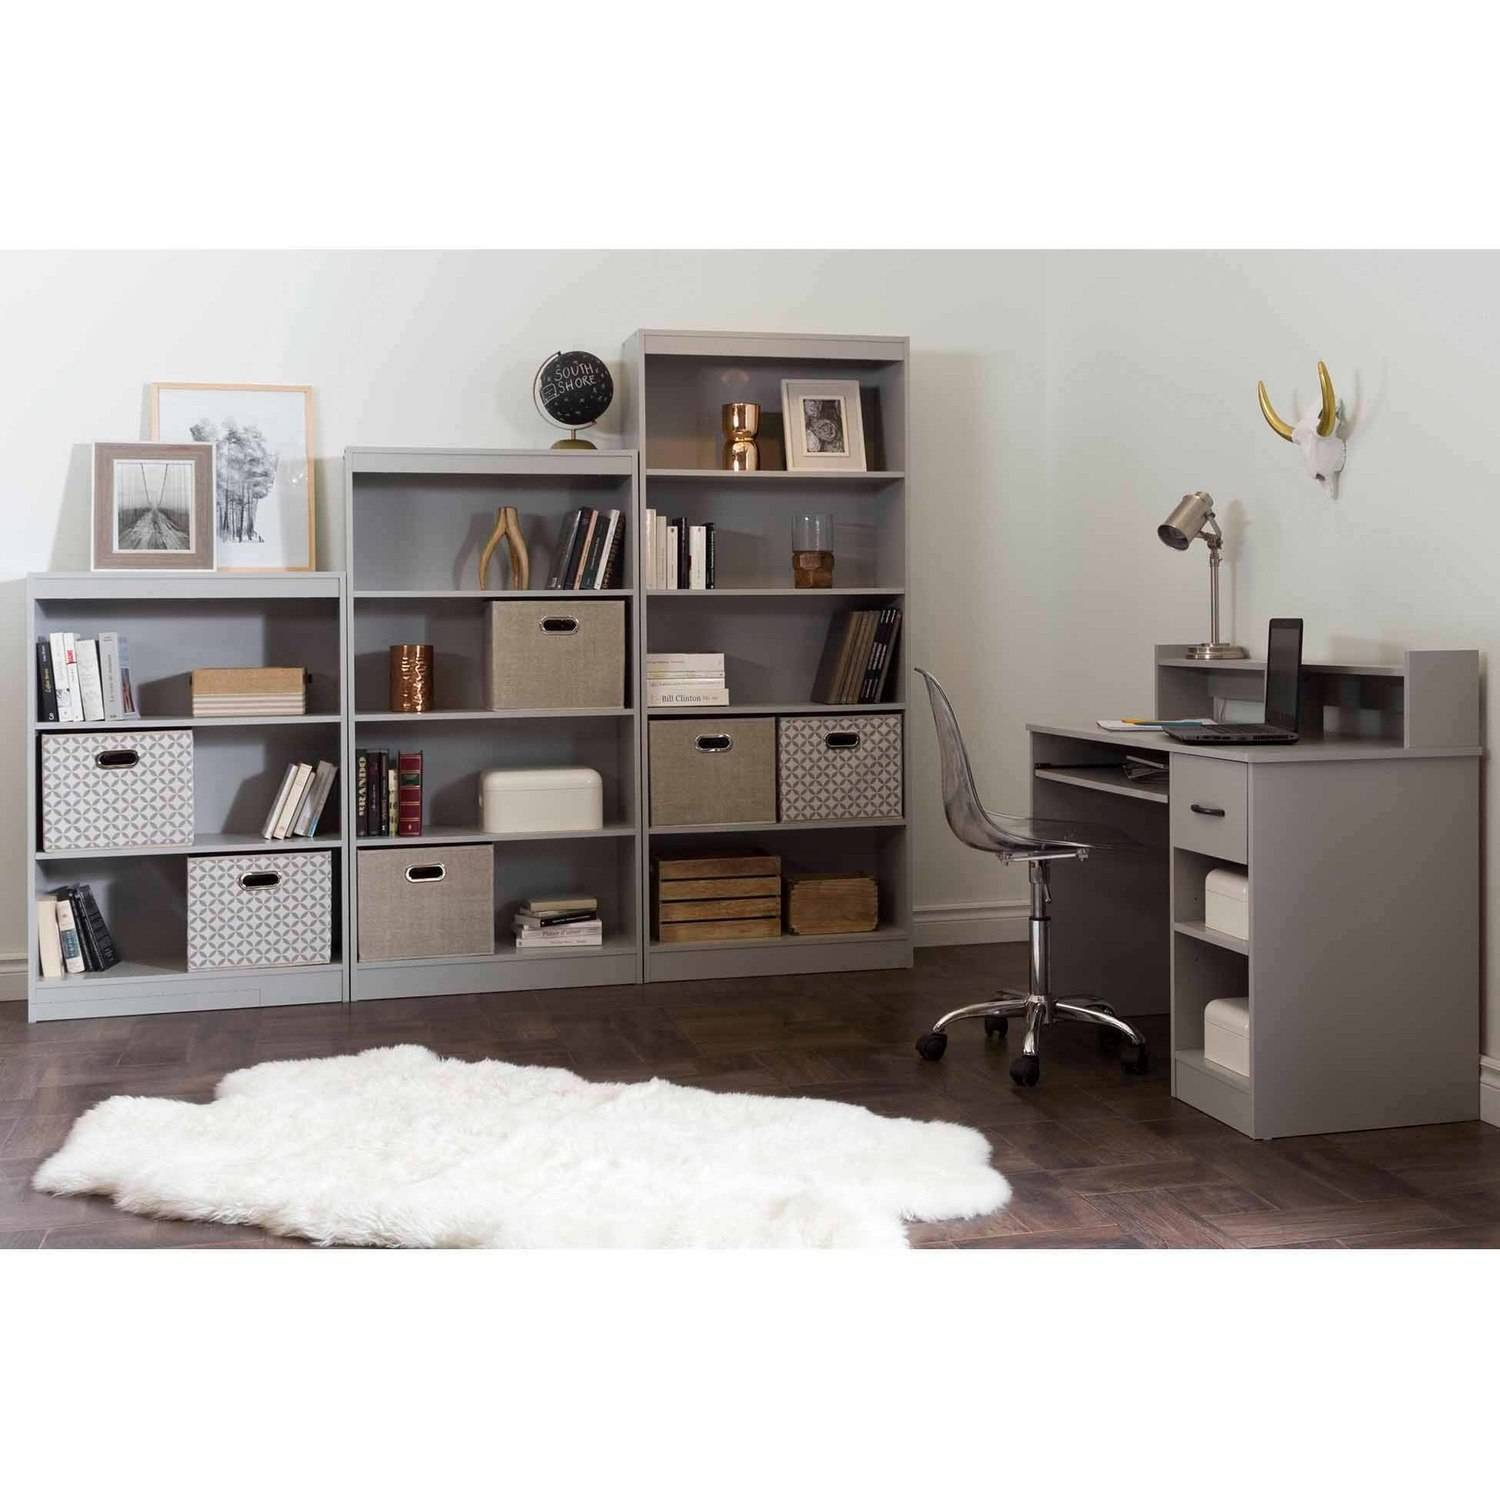 South Shore Crea Craft Table And 4 Shelf Bookcase, Multiple Finishes    Walmart.com